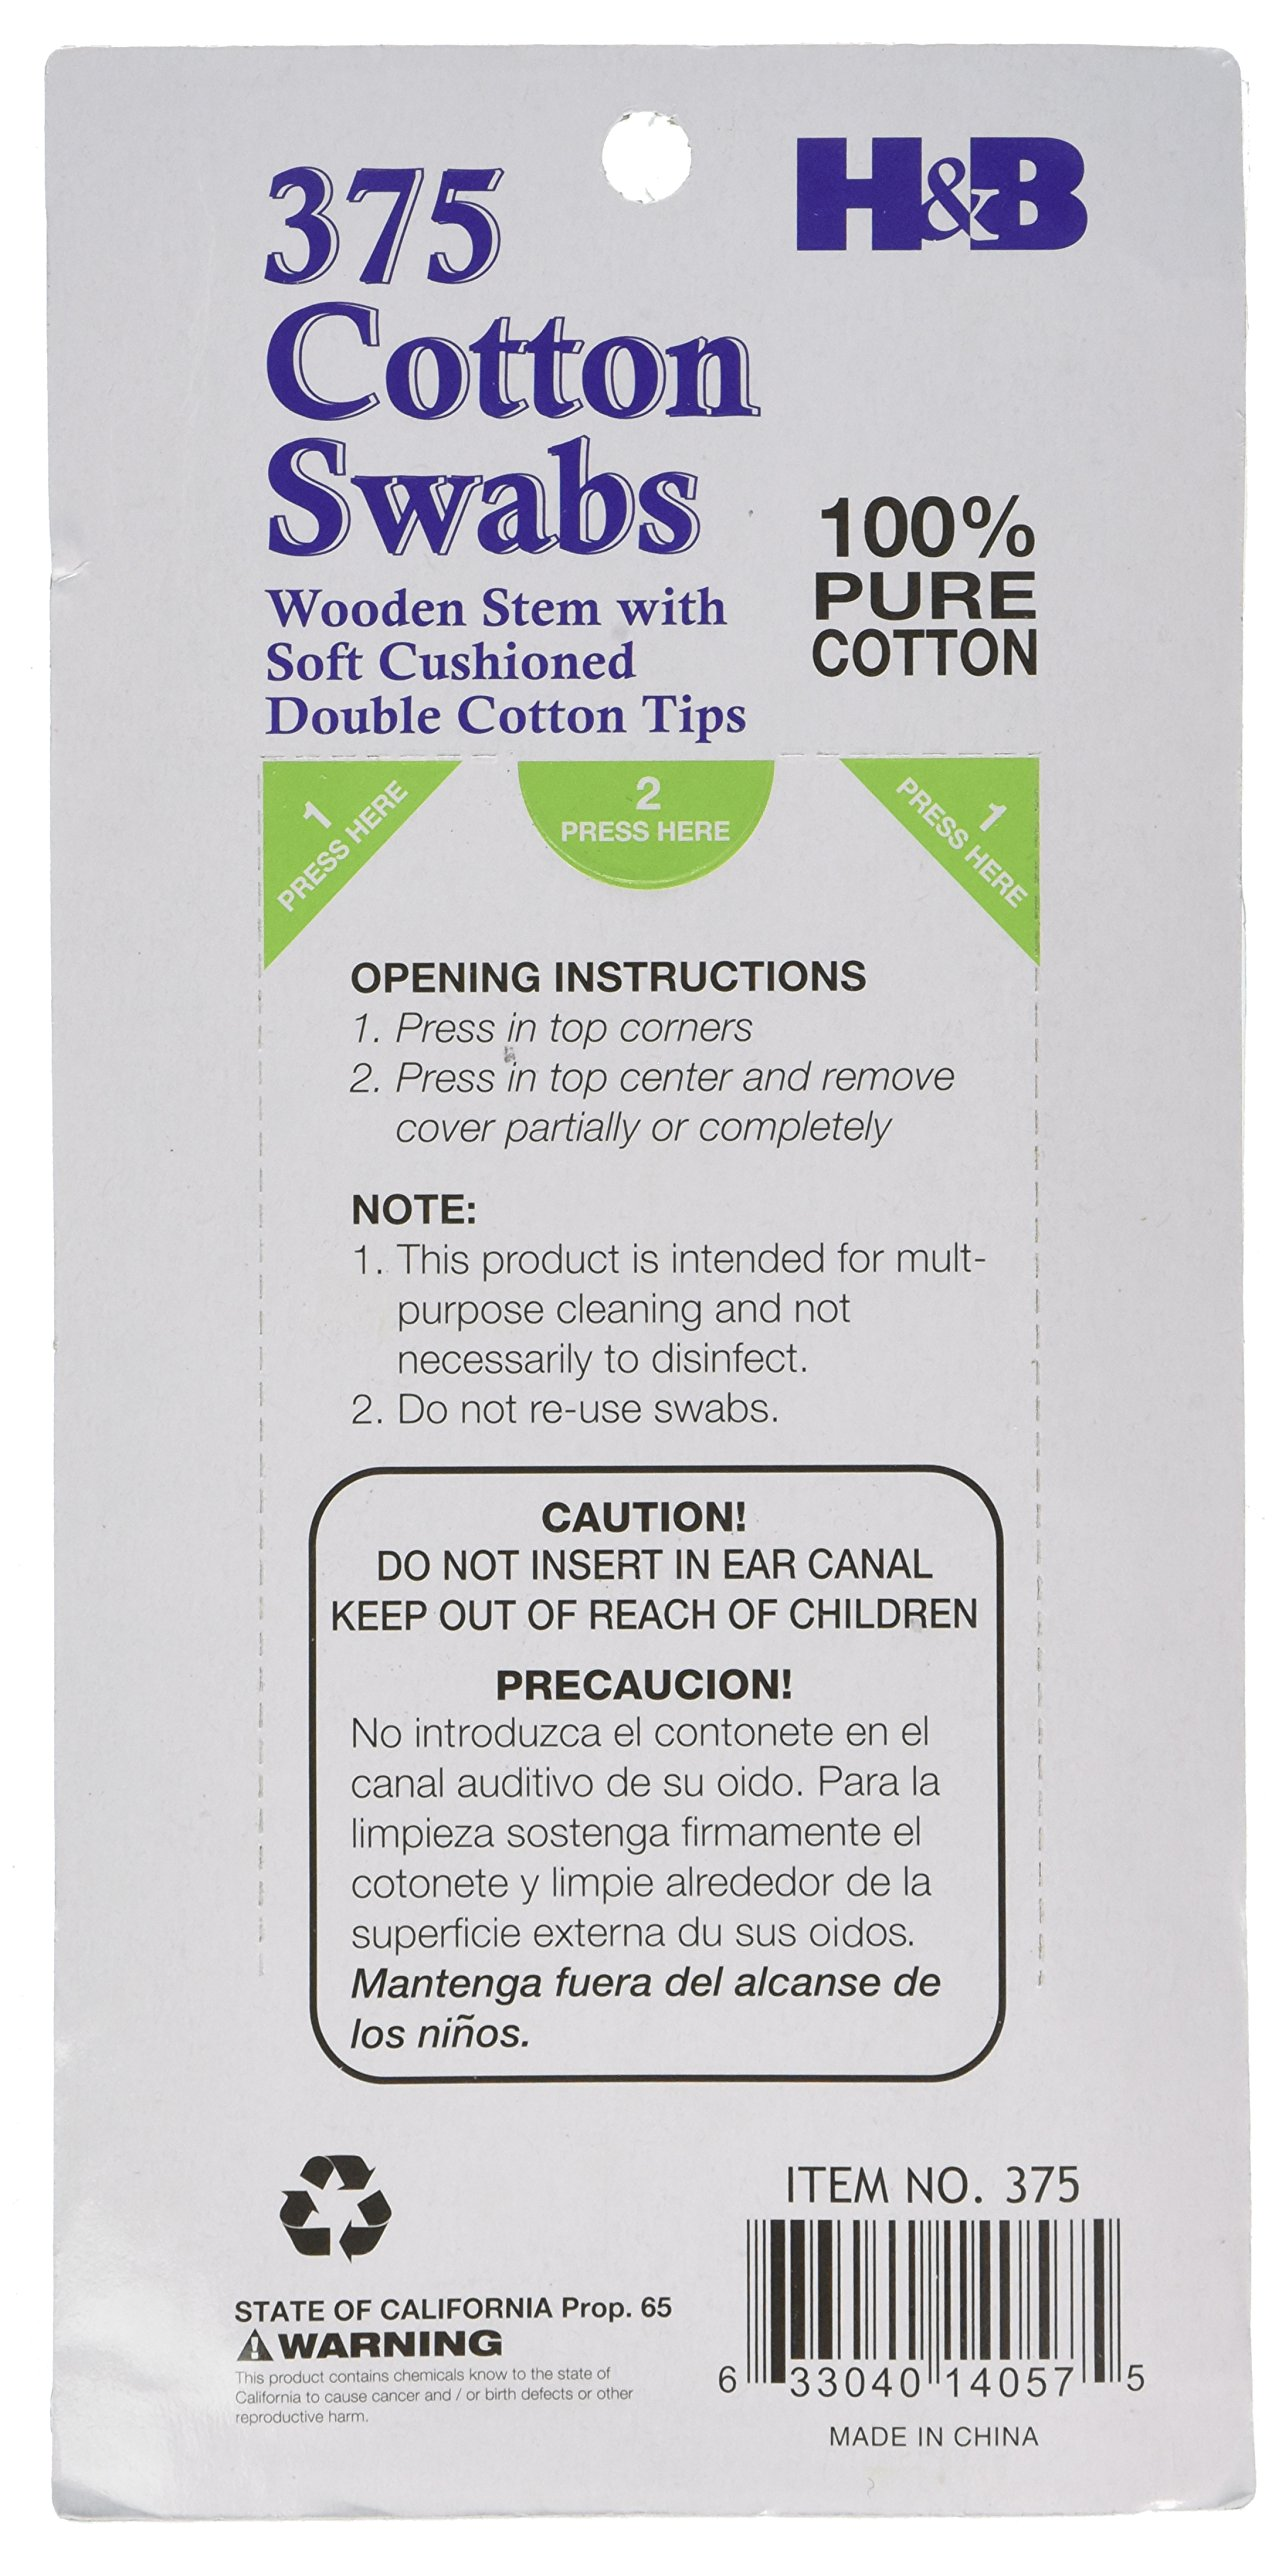 Cotton Swabs 100% Pure Cotton w/ Wooden Stem,375 Double Cotton Tips (Pack of 6), Total 2250 Soft Cotton Swabs